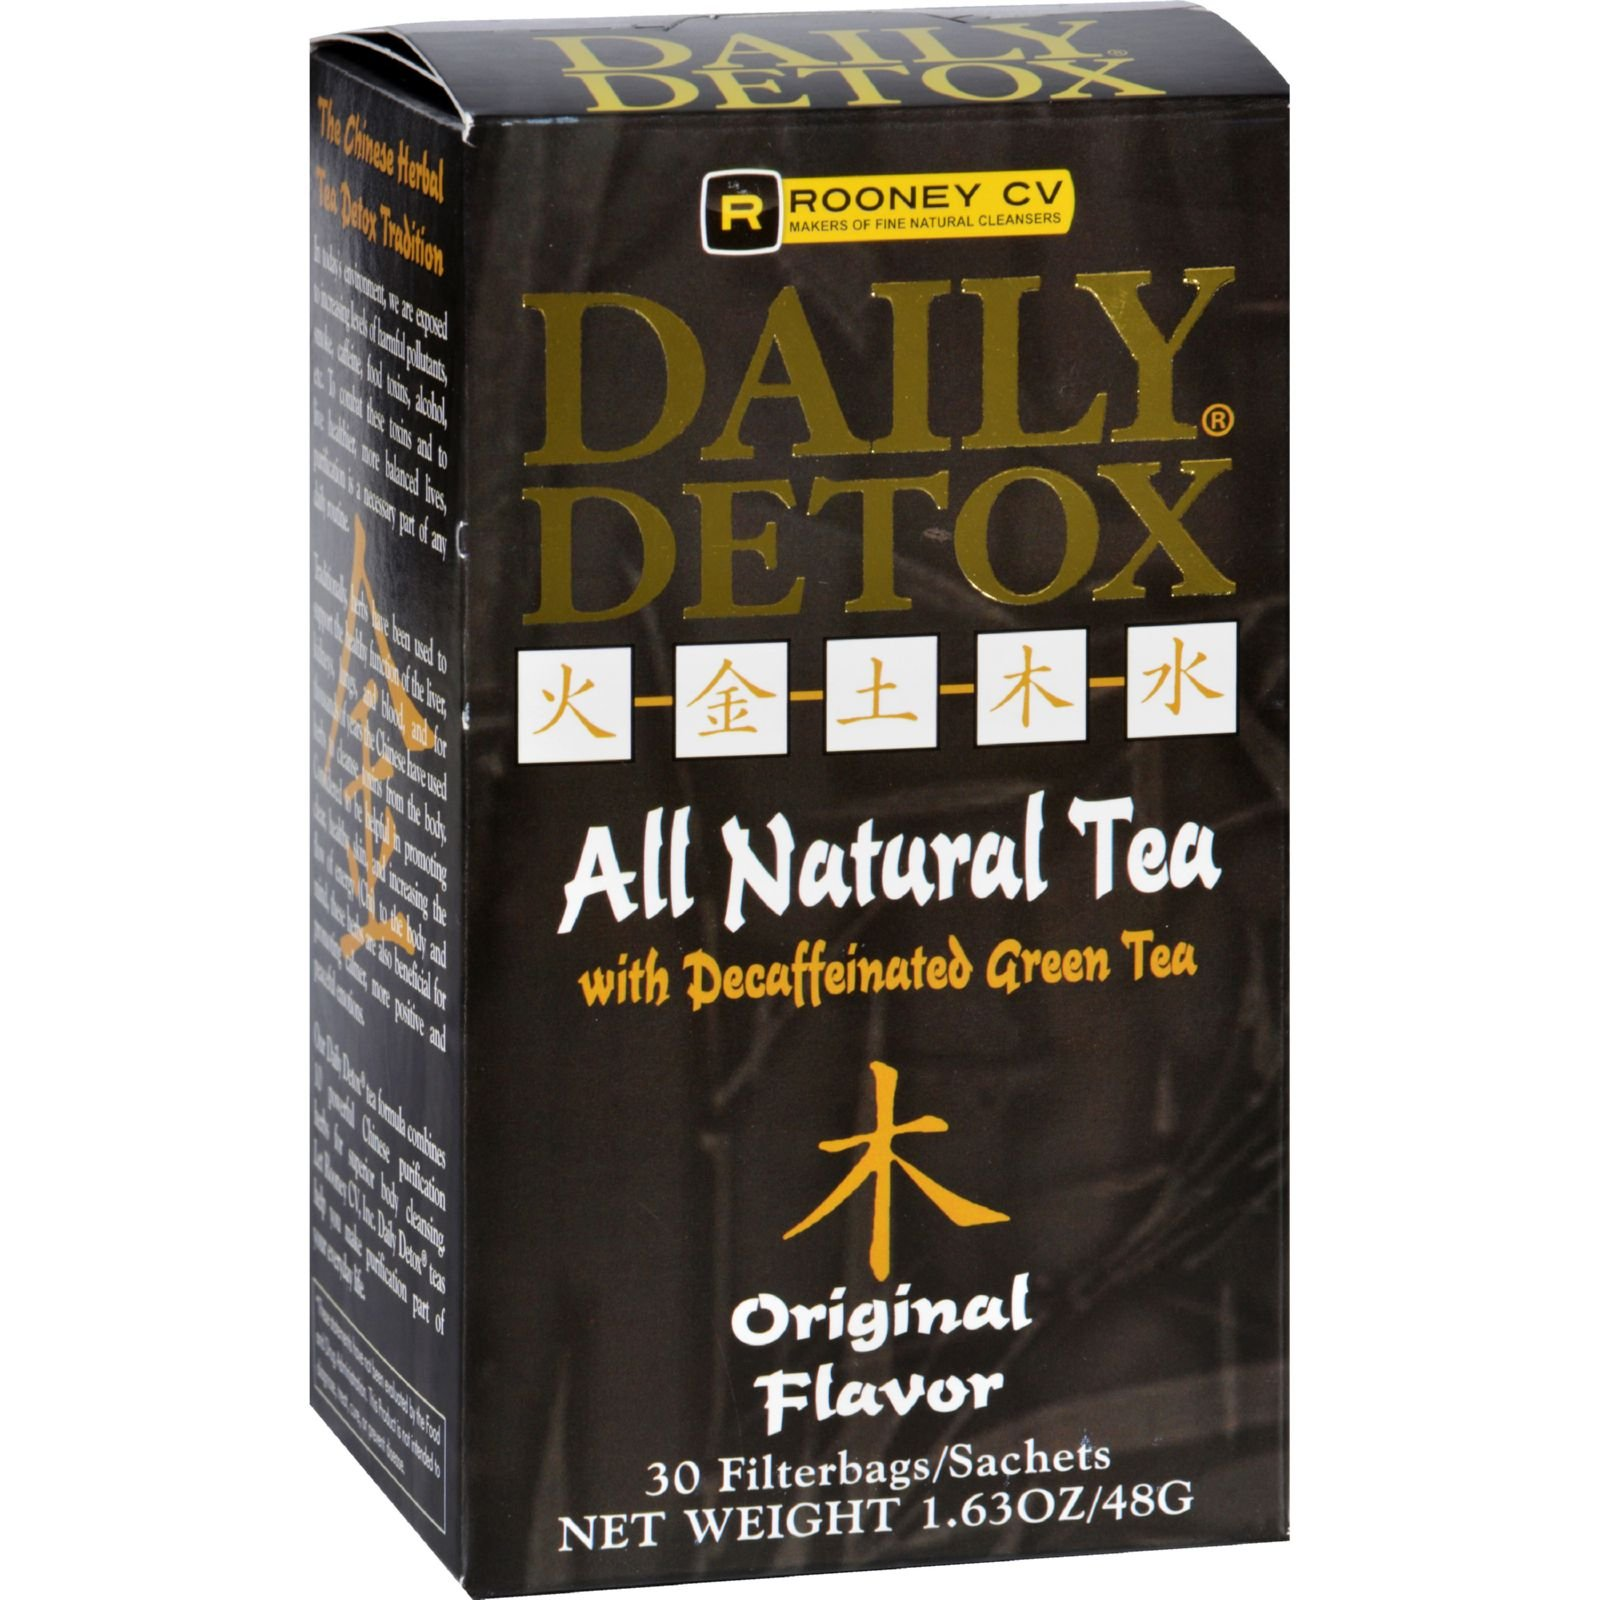 amazon com   daily detox all natural tea  decaffeinated passion fruit green tea  30 count